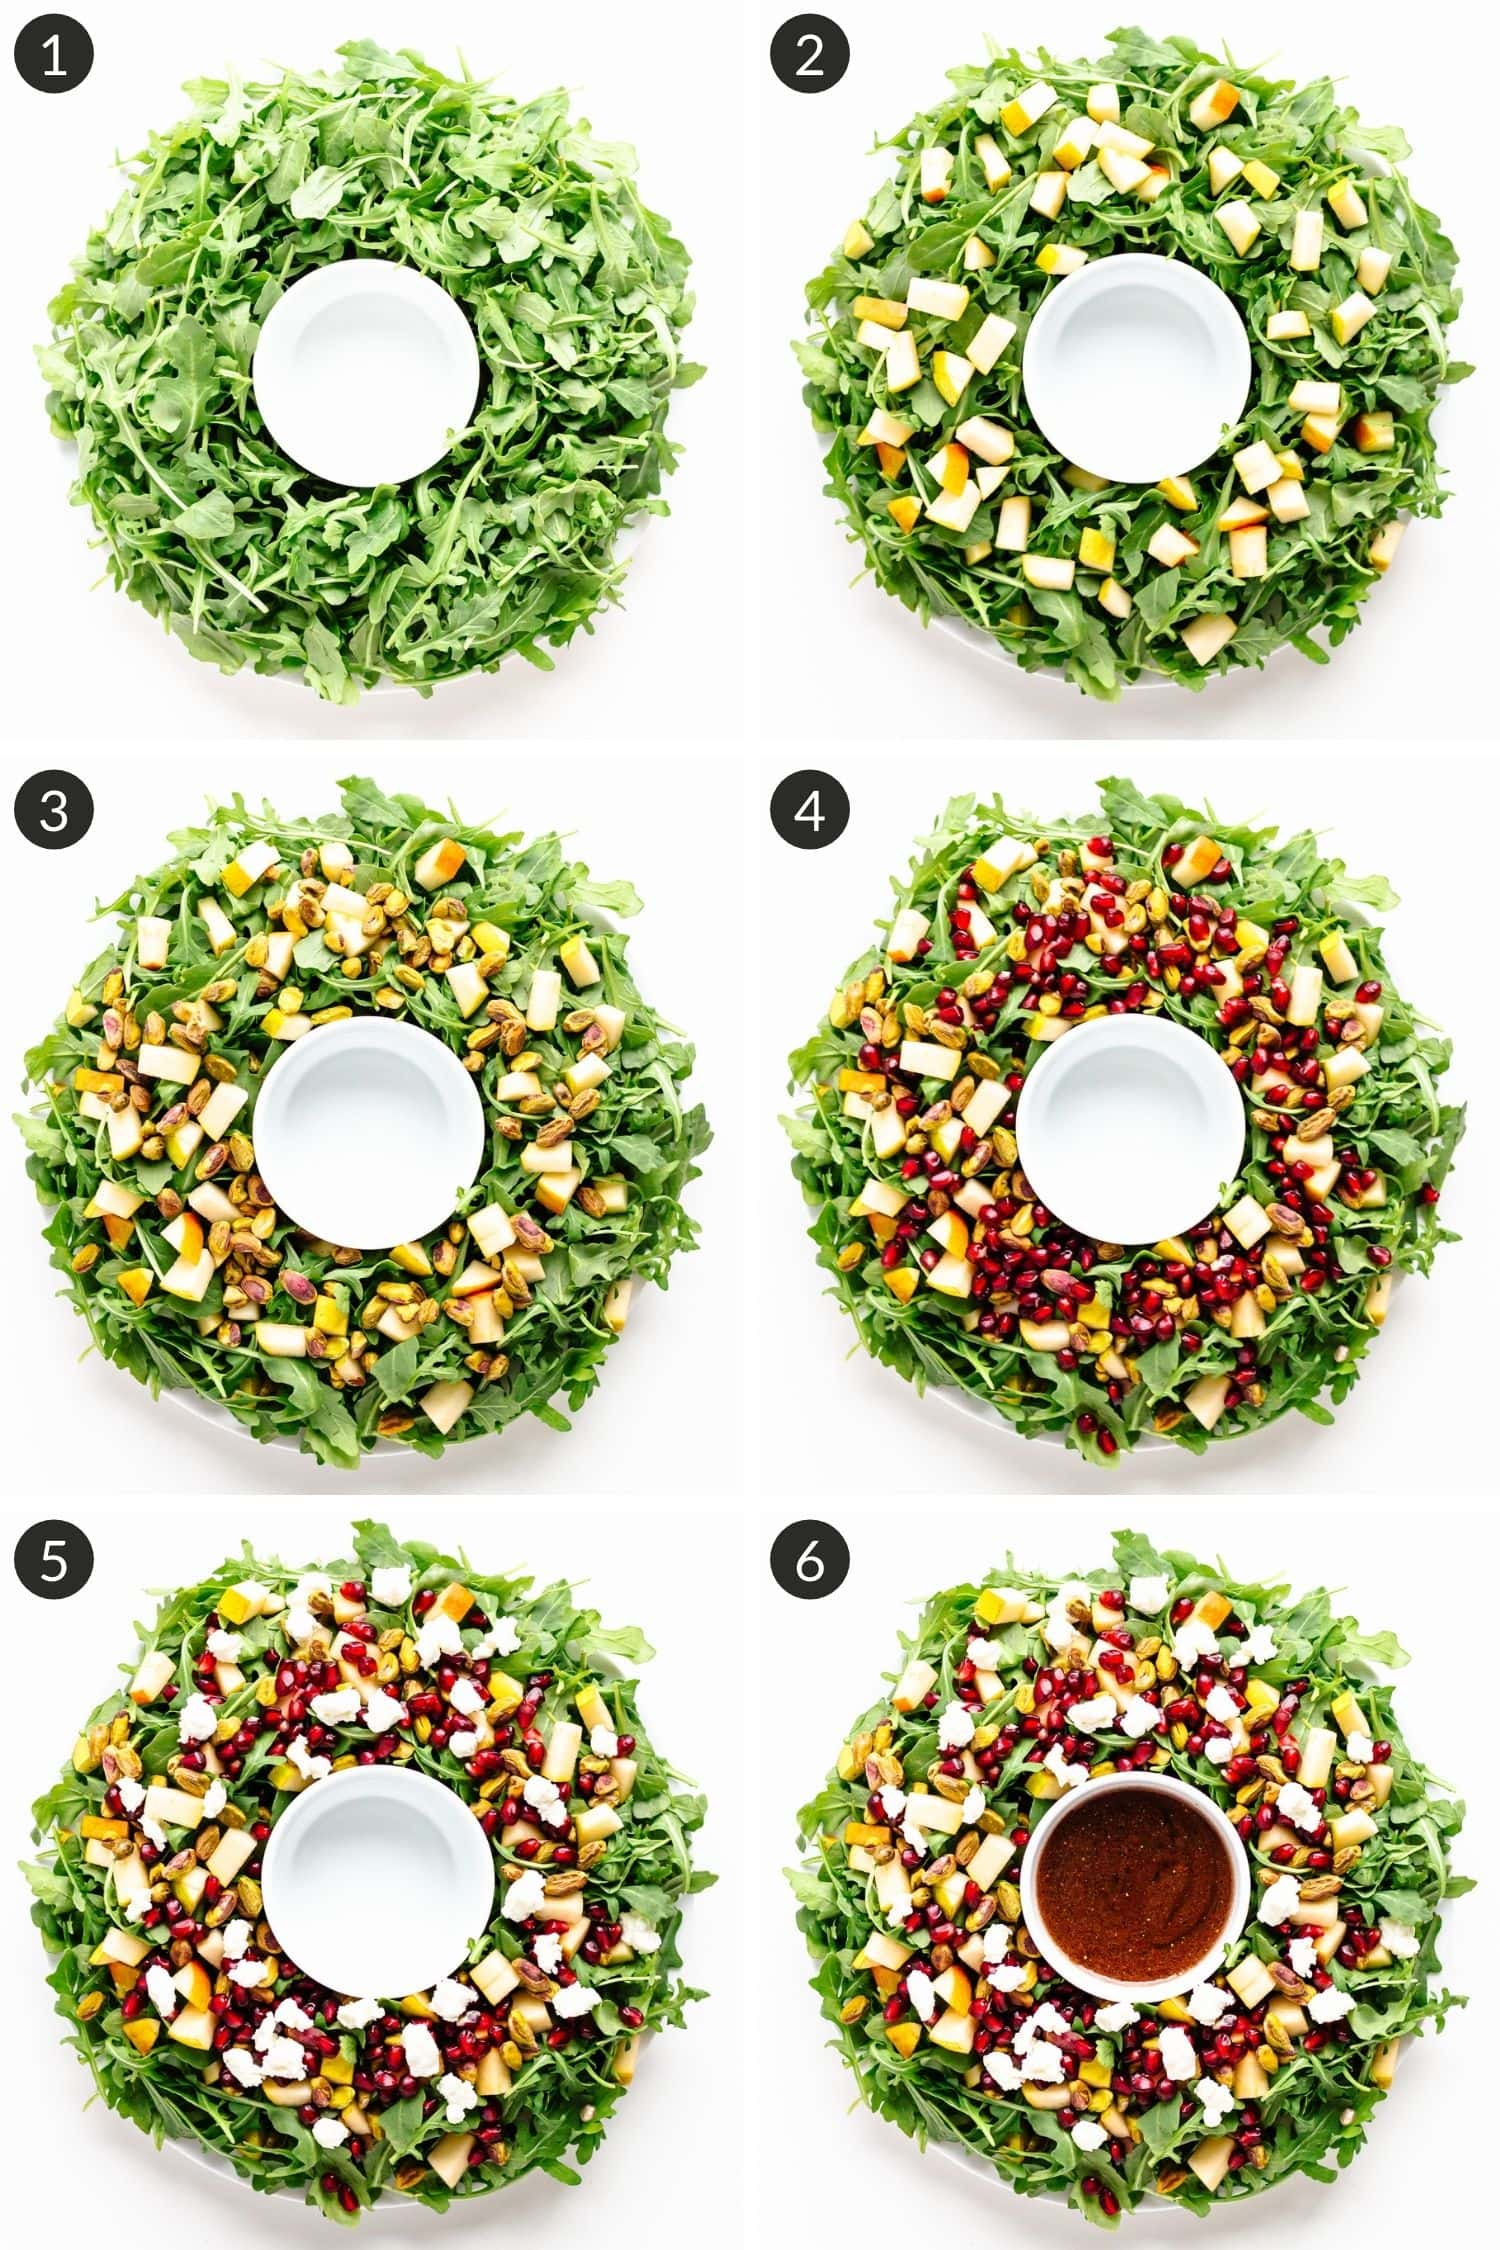 Step by step photos showing how to make a Christmas wreath salad.